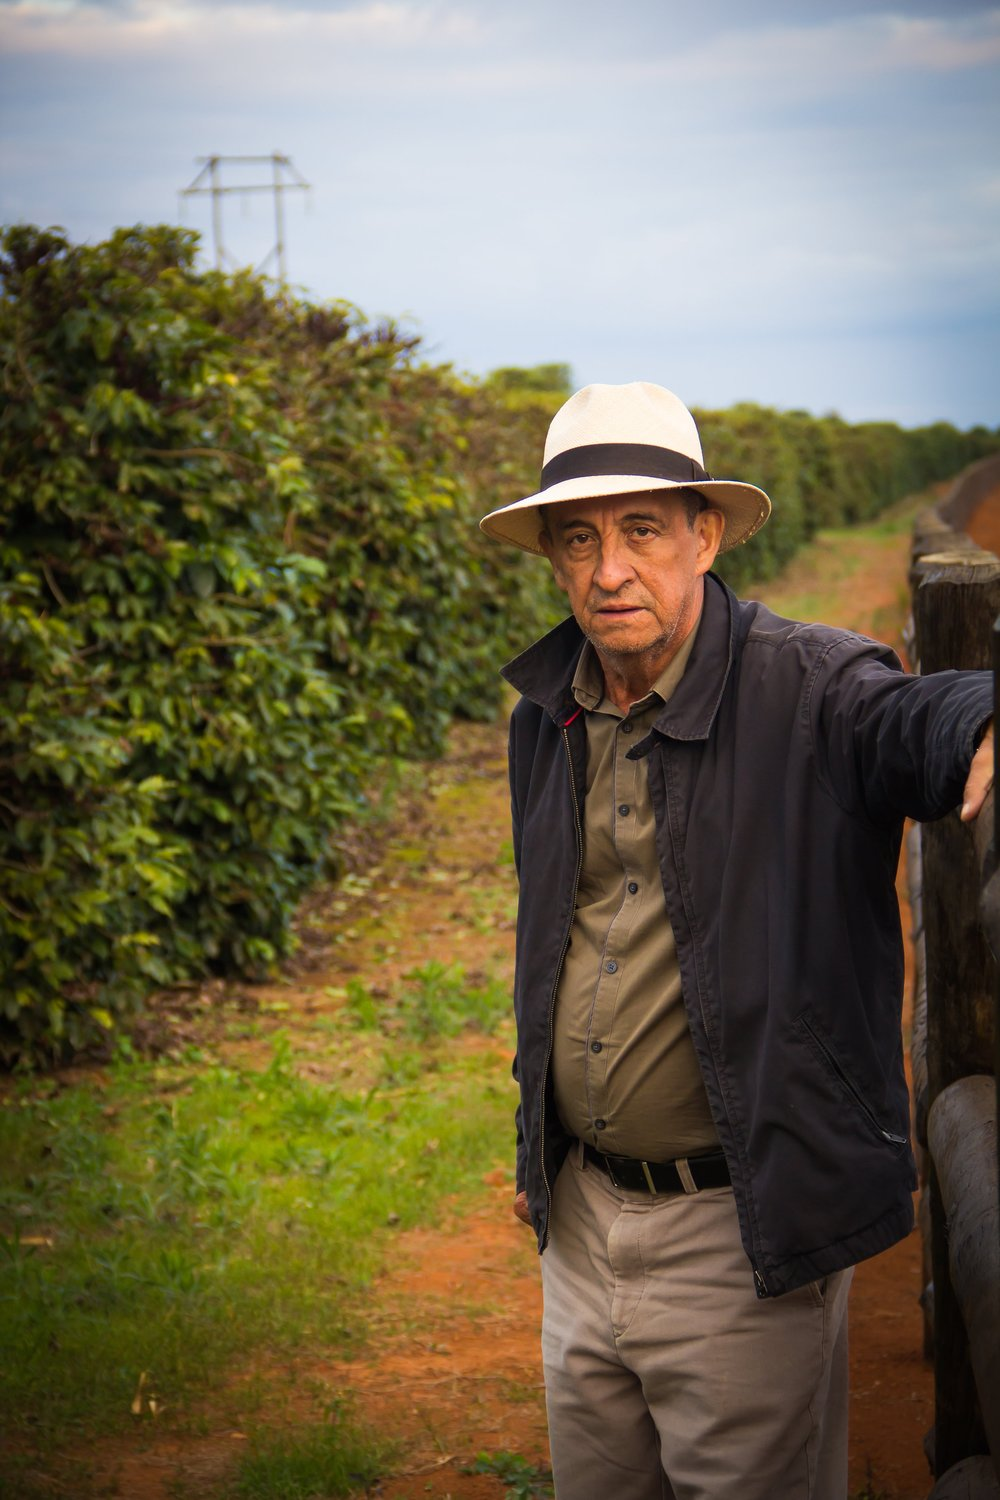 José Maria de Oliveira -  José Maria comes from a deep rooted history of coffee tradition. As a boy, his grandfather had a small coffee farm where his father and uncles use to work. José has many great memories of picking cherries beside his family and playing around the coffee trees with his grandfather. At the age of 7 José's family fell on hard times and they had no choice but to move to another part of the region and leave their home and farm behind in order to survive by working on different coffee farms.At age 17, José Maria, in the pursuit of a better life, he moved to the city of Belo Horizonte. His first job outside of coffee was as a ticket collector for the city bus line. His big break didn't come until later, when he began working inside of a pharmacy in hope of being able to earn a better living for his family. He eventually climbed the ranks and become a sales representative. In that position José learned 2 valuable lessons, the importance of being organized, and understanding at any level everything has a process. Eventually the realization set in with José, he could never stop thinking about Campos Altos. He always pondered to himself, how can the coffee in Campos Altos be so blessed? From that moment forward he made it his mission to one day have a piece of land in Campos Altos to live and grow coffee. He then moved home and fell in love with his wife Ebe, who's family history was identical to Josés. Ebe's family comes from a deep lineage of coffee pickers as well.